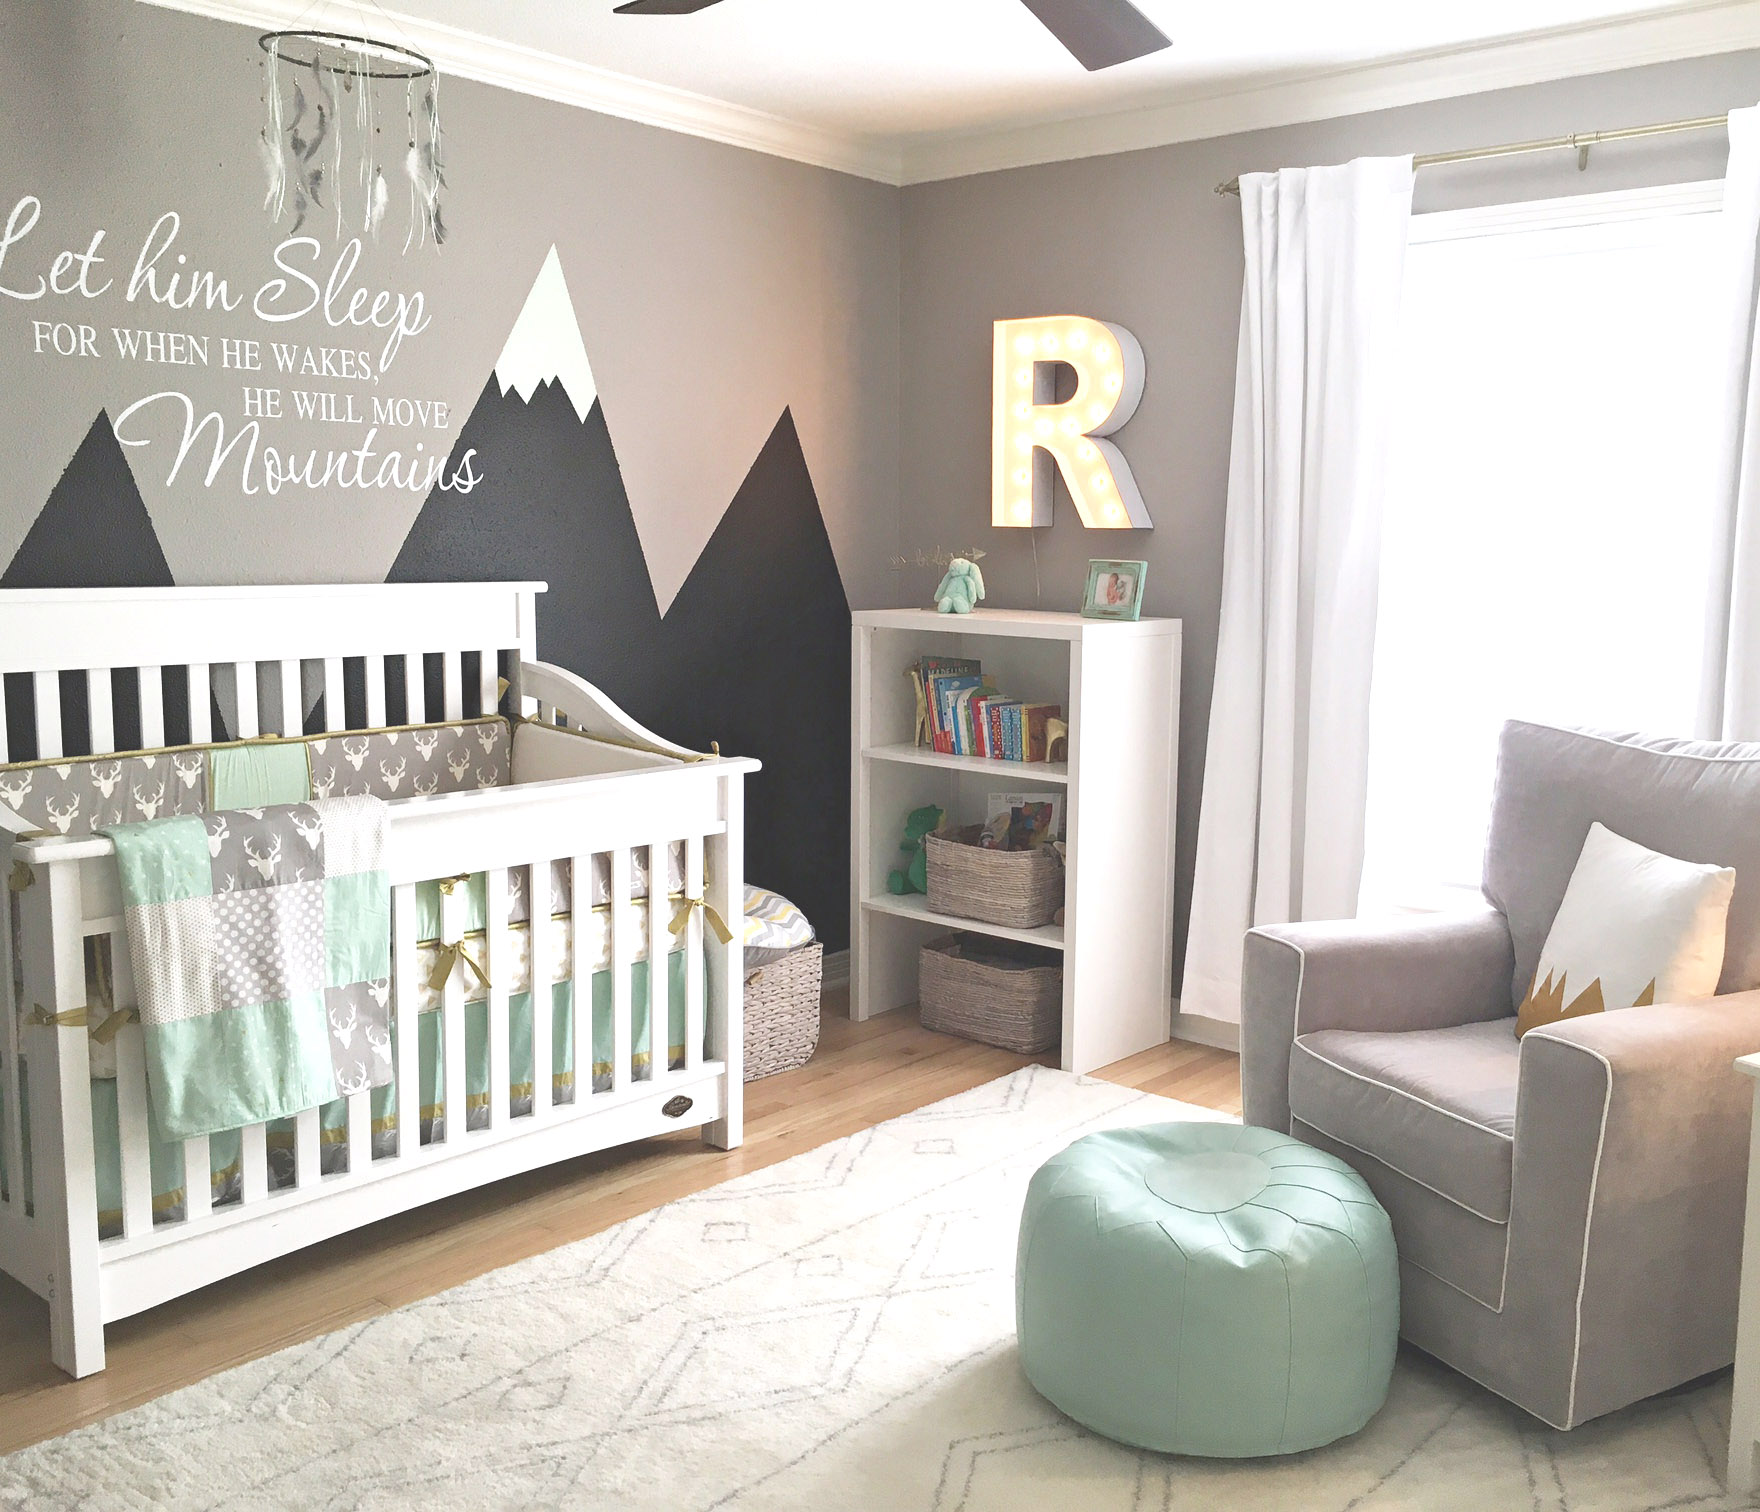 Design Reveal: Mountain-Inspired Nursery